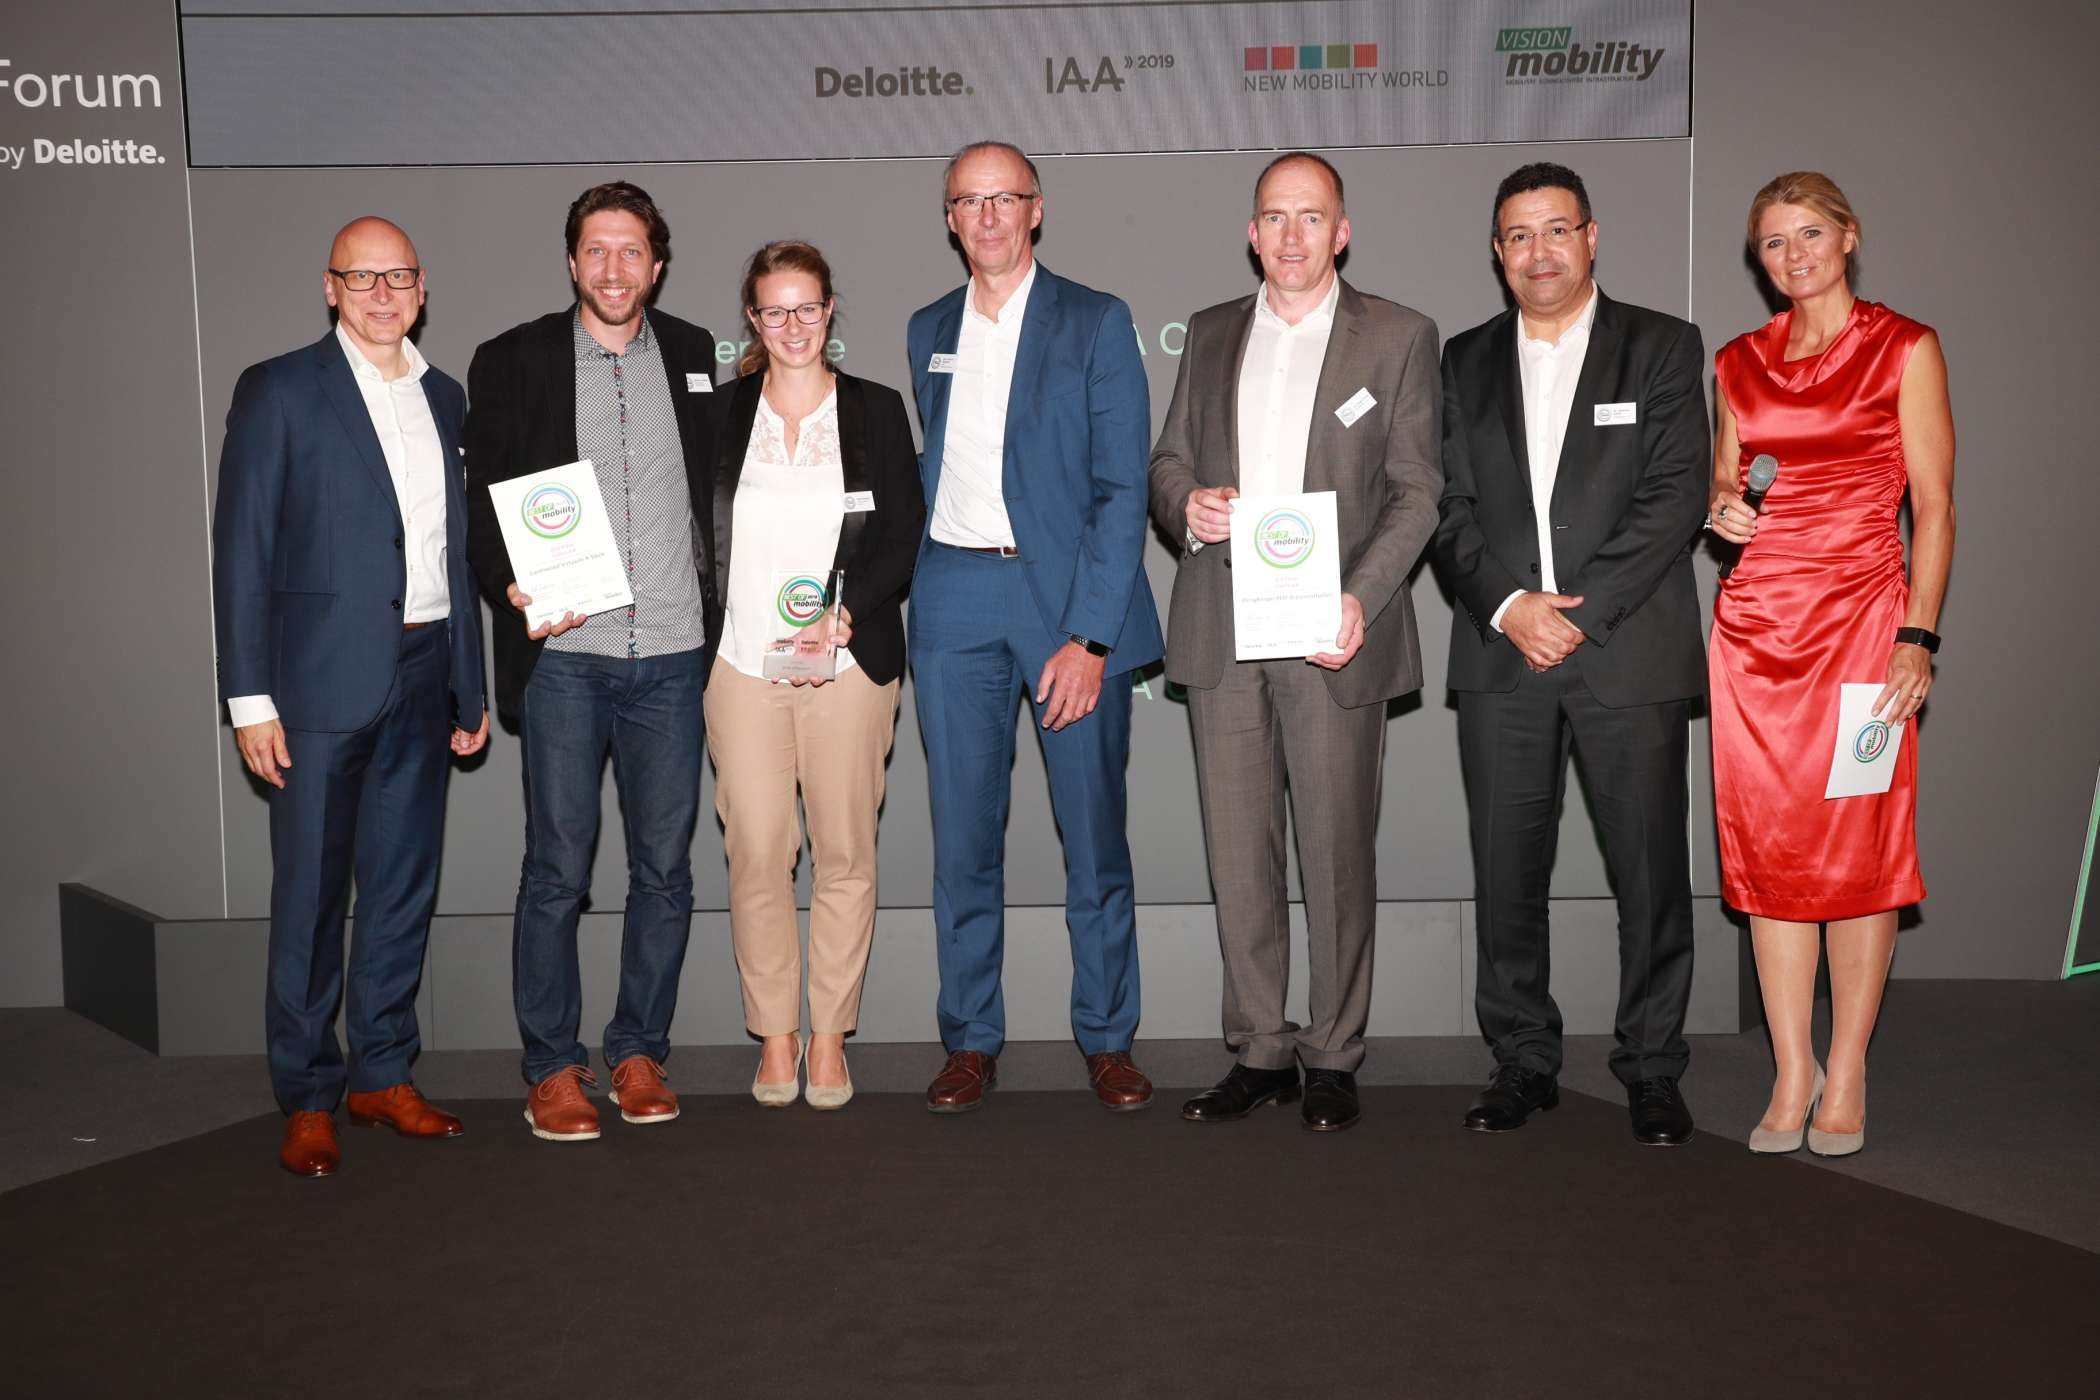 Supplier: Dr. Thomas Schiller, Partner Automotive Lead, Deloitte (li.) & Moderatorin Maren Braun (re.) mit Zack Bolton, Systems Engineering Manager Continental (2.v.l.), Katja Boecker (3.v.l.), Referentin GL Business Unit Innercity/E-Mobilität, BPW, Hans Werner Kopplow, Leiter Unit Innercity/Elektromobilität BPW (4.v.l.), Dr. Jürgen Kraft, Entwicklungsleiter Brennstoffzelle (5.v.l.), Dr. Mohsine Zahid, Director Global Business Developement Battery & Fuel Cell (6.v.l), beide ElringKlinger. | Foto: H. Weipert